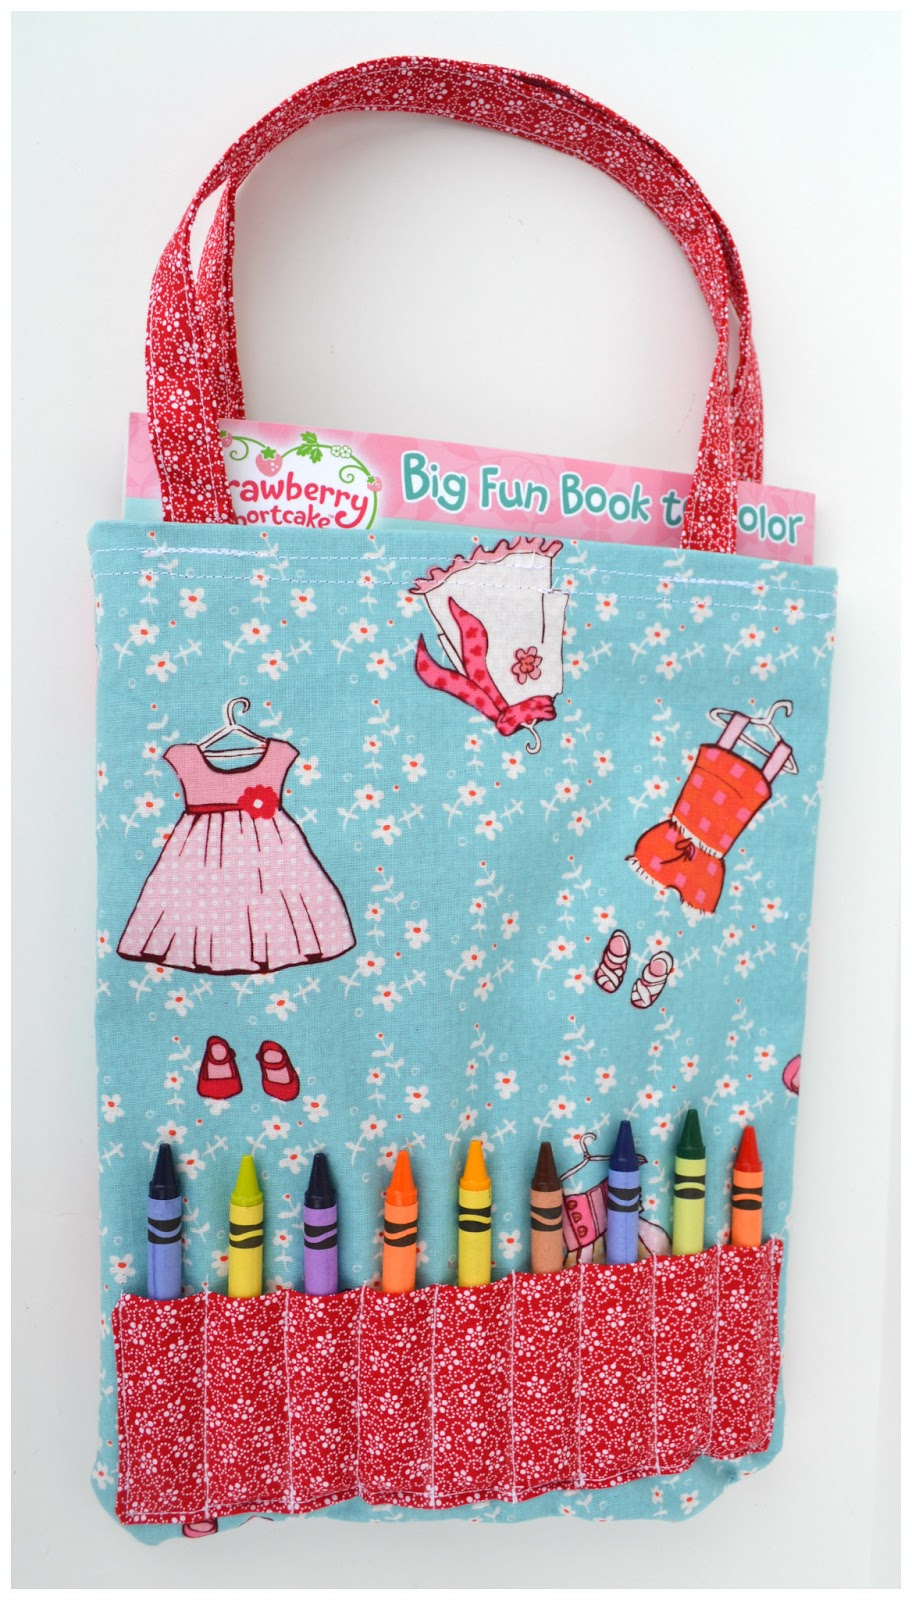 Potlucks On The Porch Personalized Crayon Tote Bag Tutorial